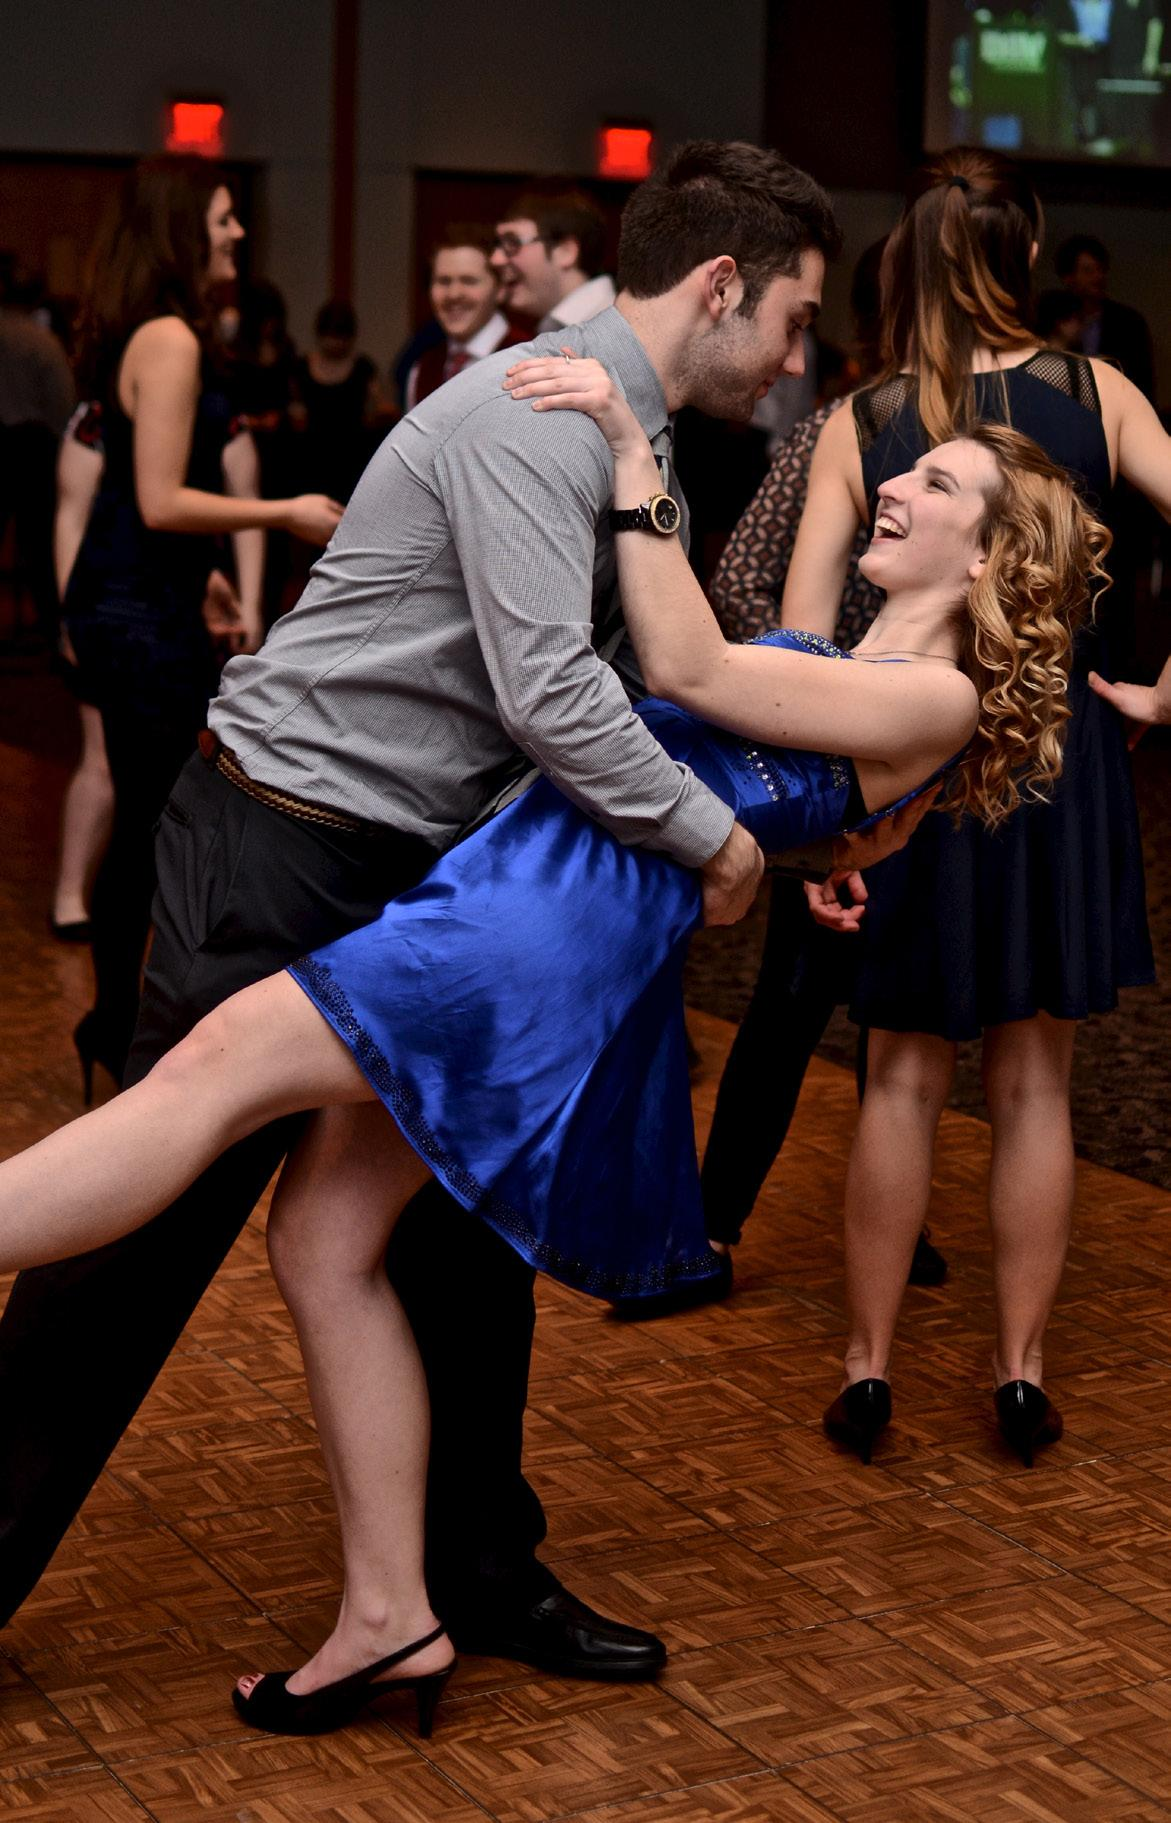 PHOTO BY MARGARET SHAW STAFF PHOTOGRAPHER Schoolcraft students Courtney Deska and Anthony Sloan participate in the Swing into Service dance that Phi Theta Kappa held in late 2014. The money raised from the dance benefited many veterans.